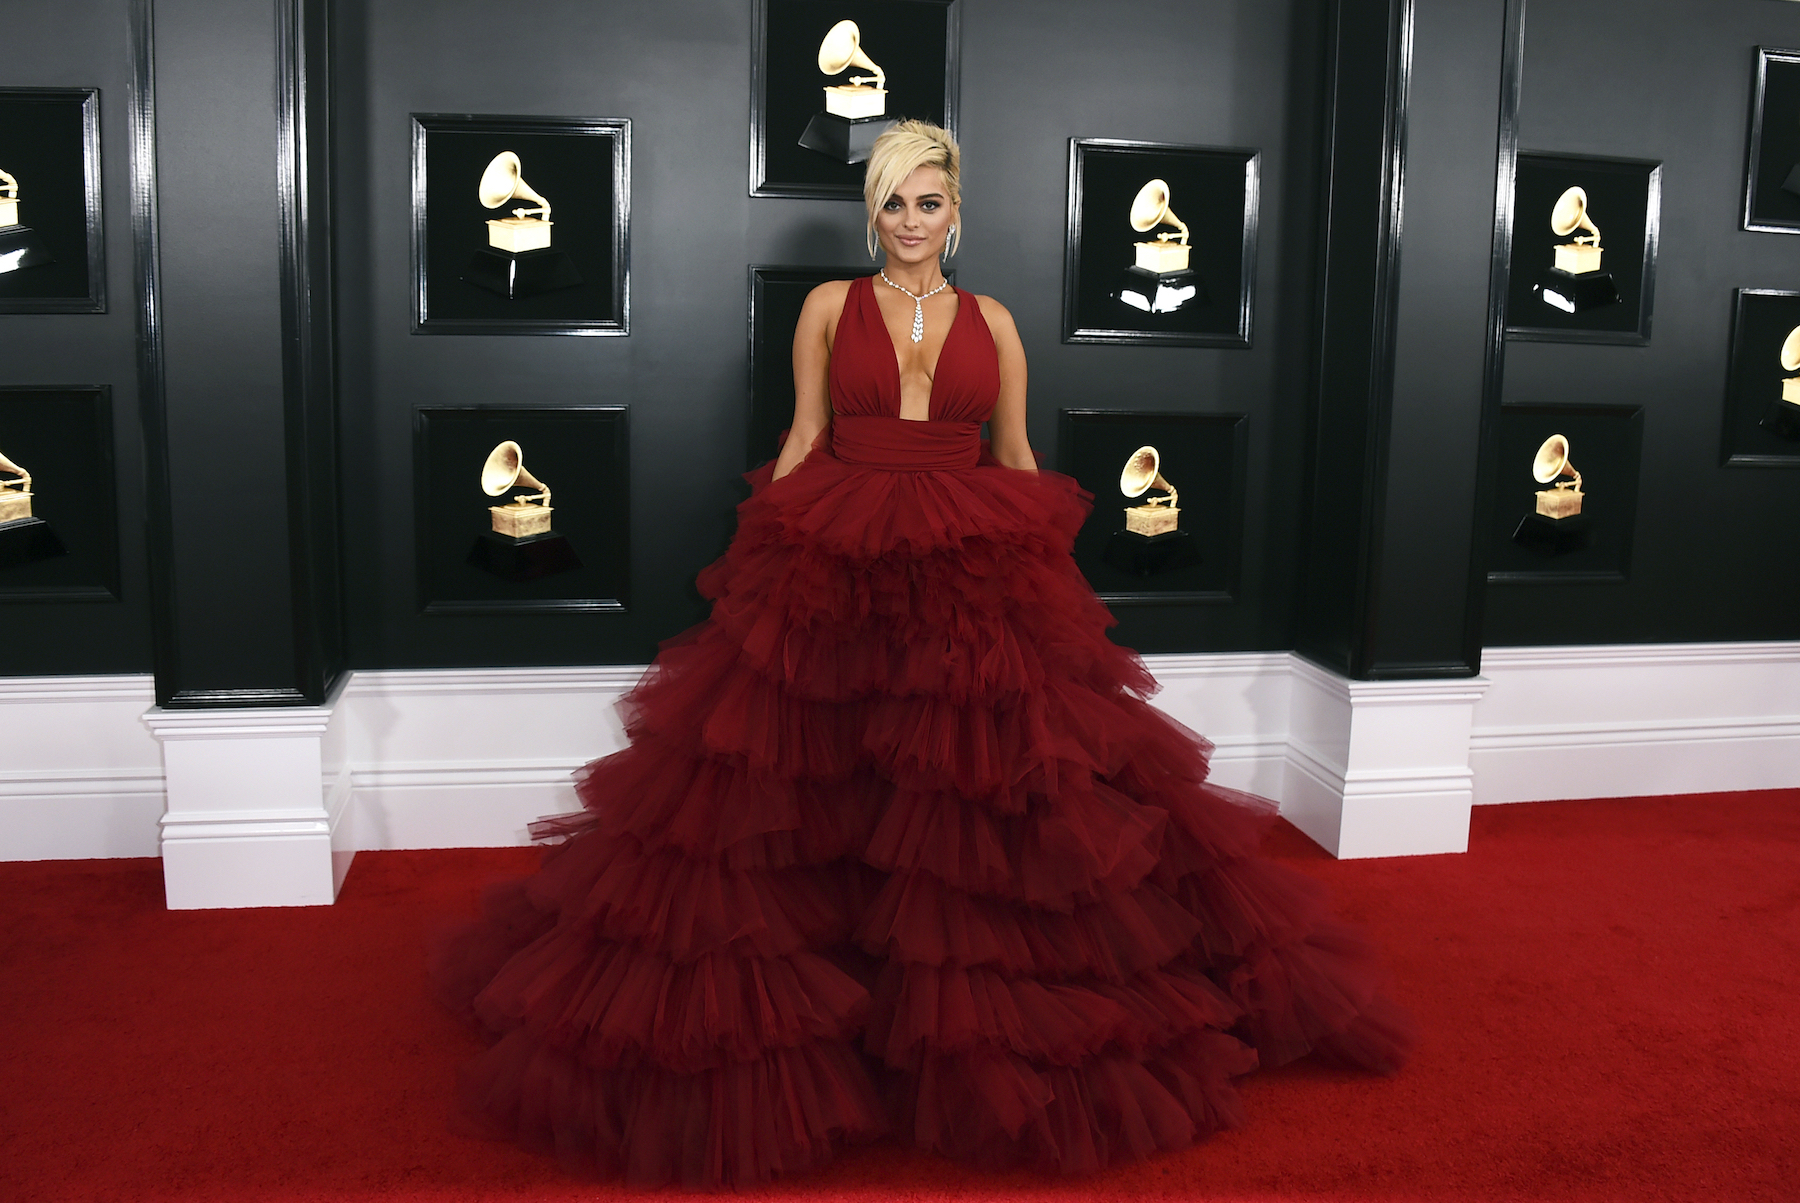 <div class='meta'><div class='origin-logo' data-origin='AP'></div><span class='caption-text' data-credit='Jordan Strauss/Invision/AP'>Bebe Rexha arrives at the 61st annual Grammy Awards at the Staples Center on Sunday, Feb. 10, 2019, in Los Angeles.</span></div>